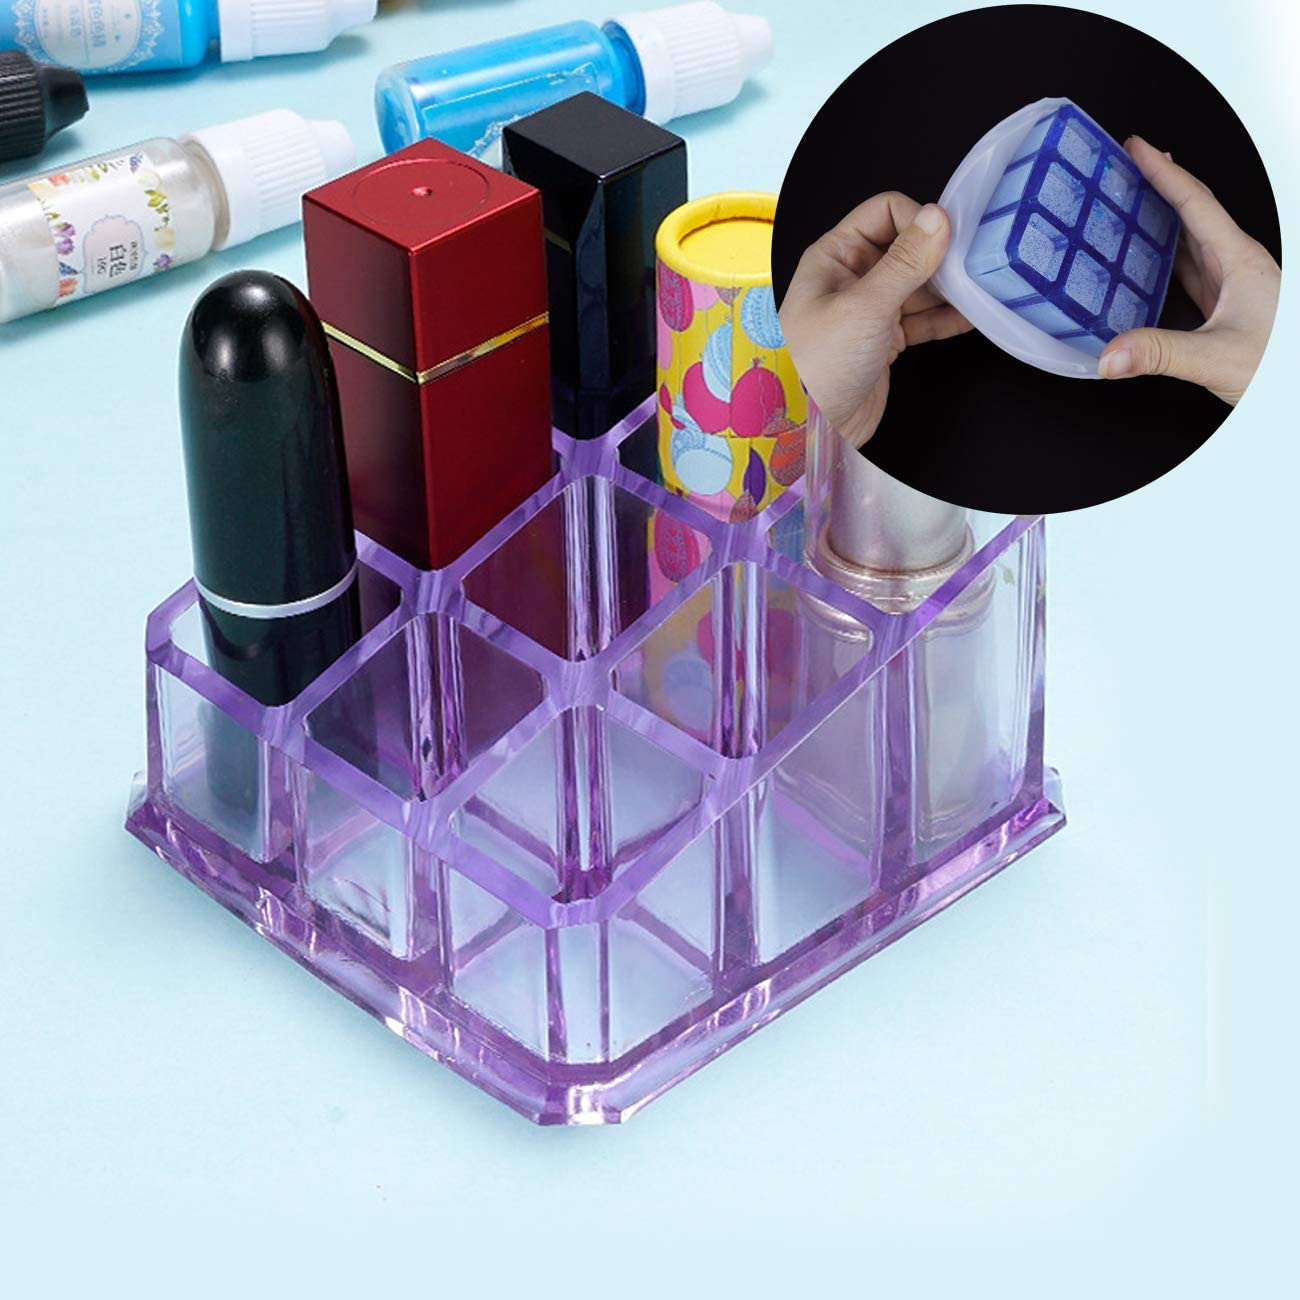 Silicone Jewelry Box Molds with 9-Slot Lipstick Organizer Molds Mity rain Box Resin Molds 3D Crown Jewelry Storage Box and Pyramid Trinket Epoxy Mold for DIY Art Casting Resin